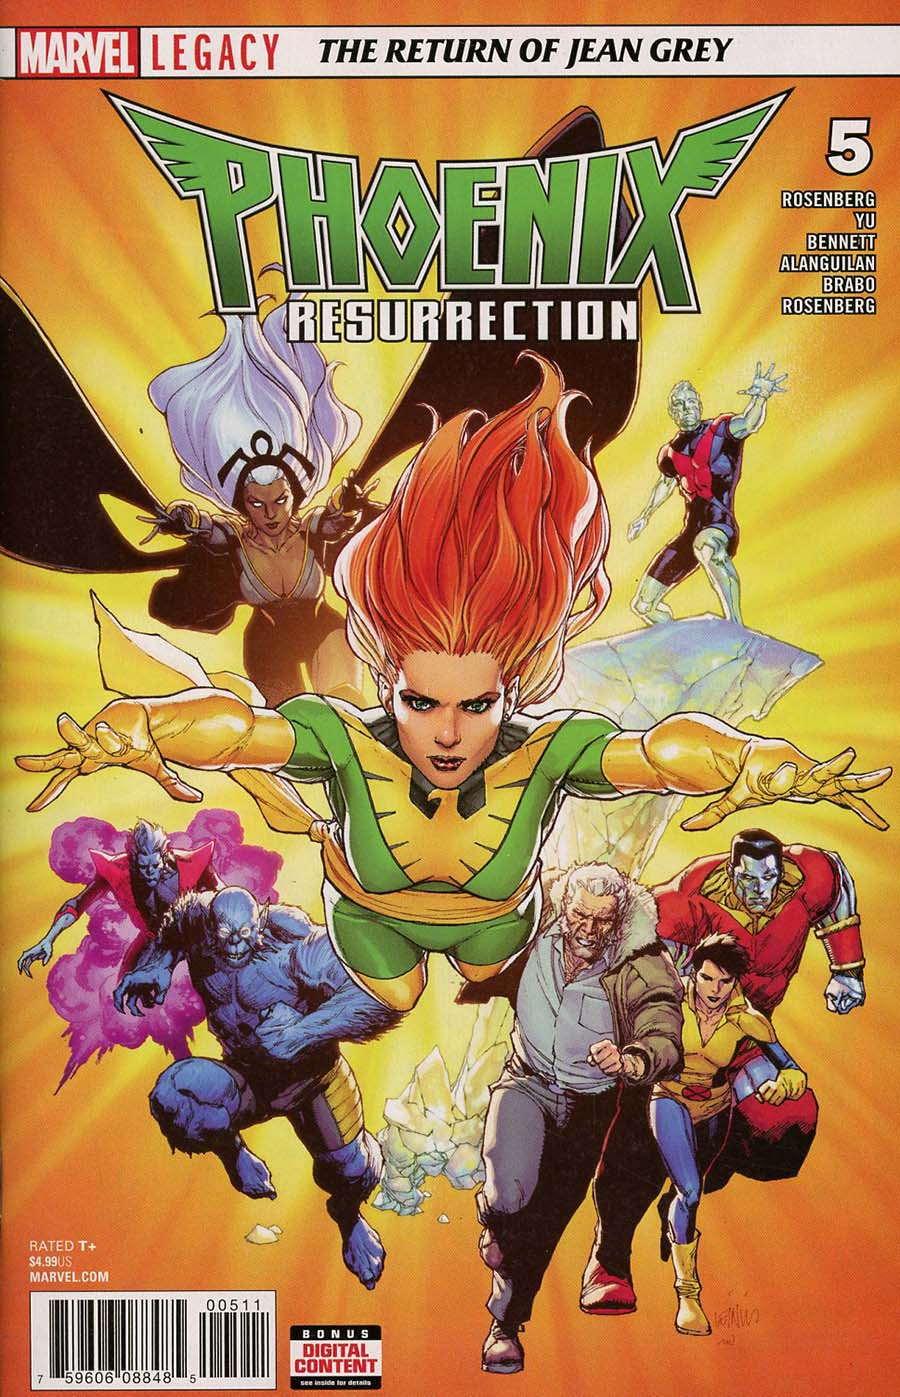 Phoenix Resurrection Return Of (Adult) Jean Grey #5 Cover A Regular Leinil Francis Yu Cover (Marvel Legacy Tie-In)